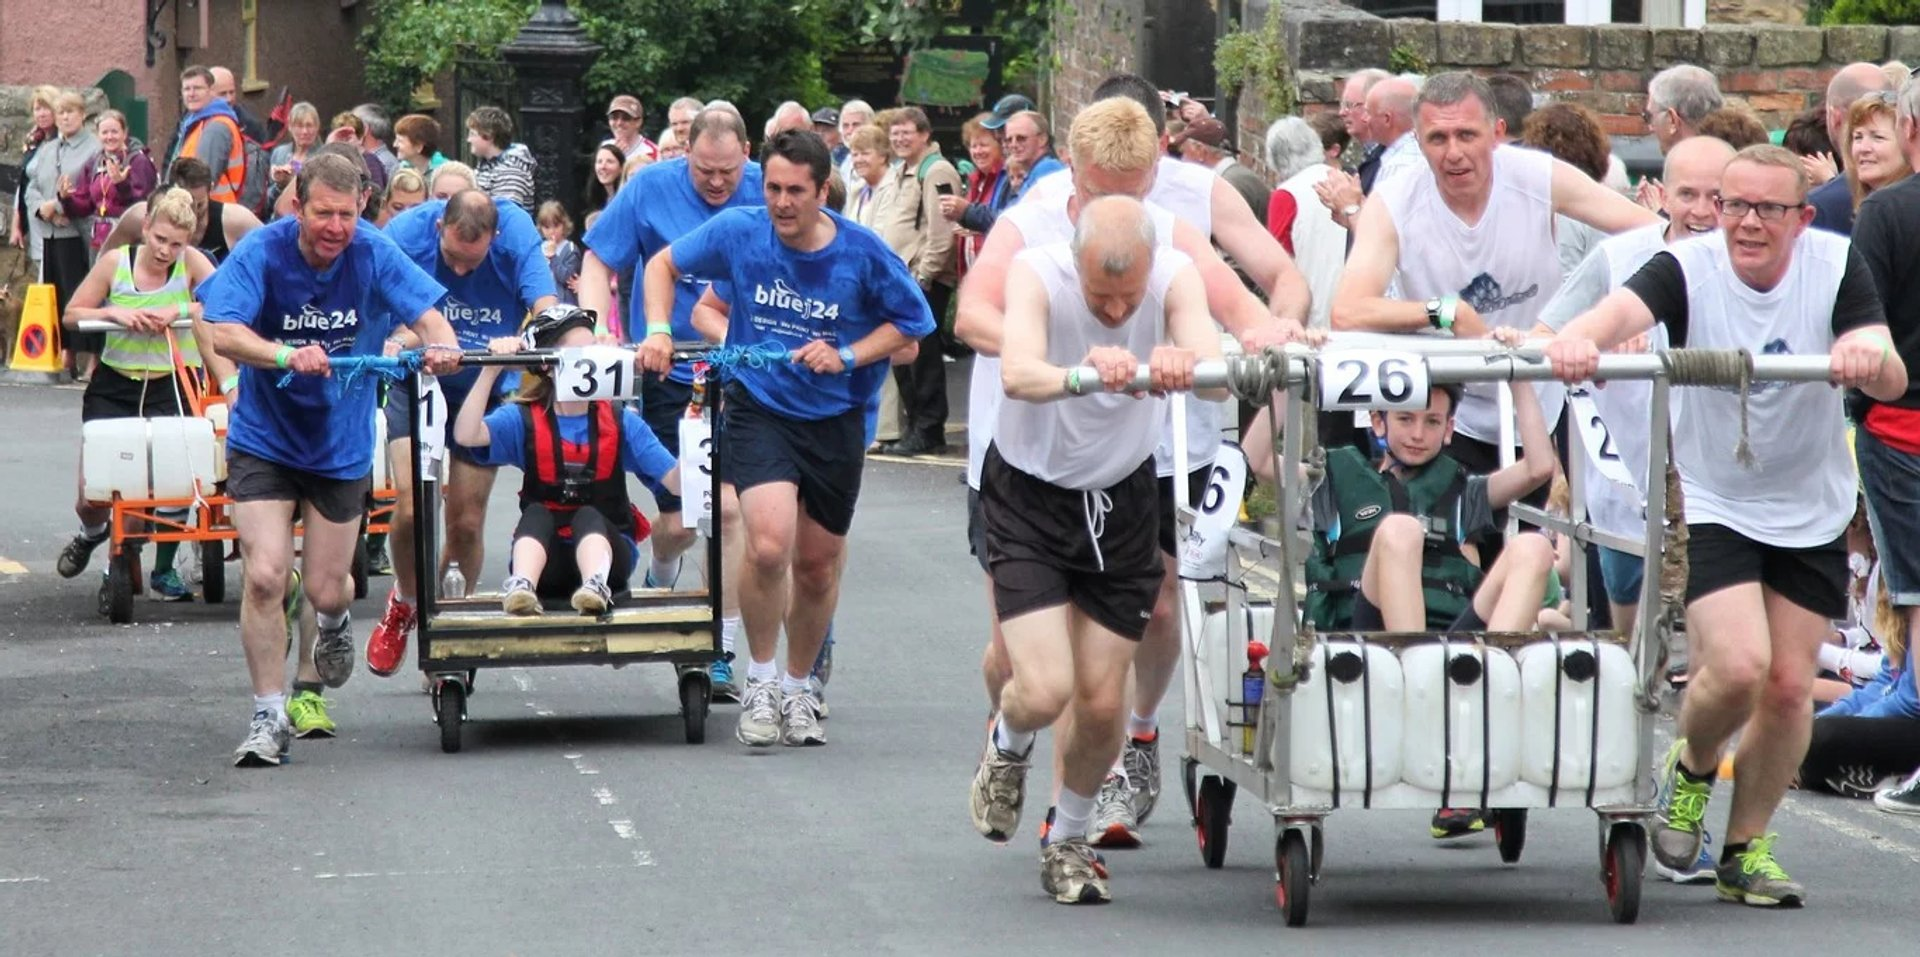 Knaresborough Bed Race in England - Best Season 2019